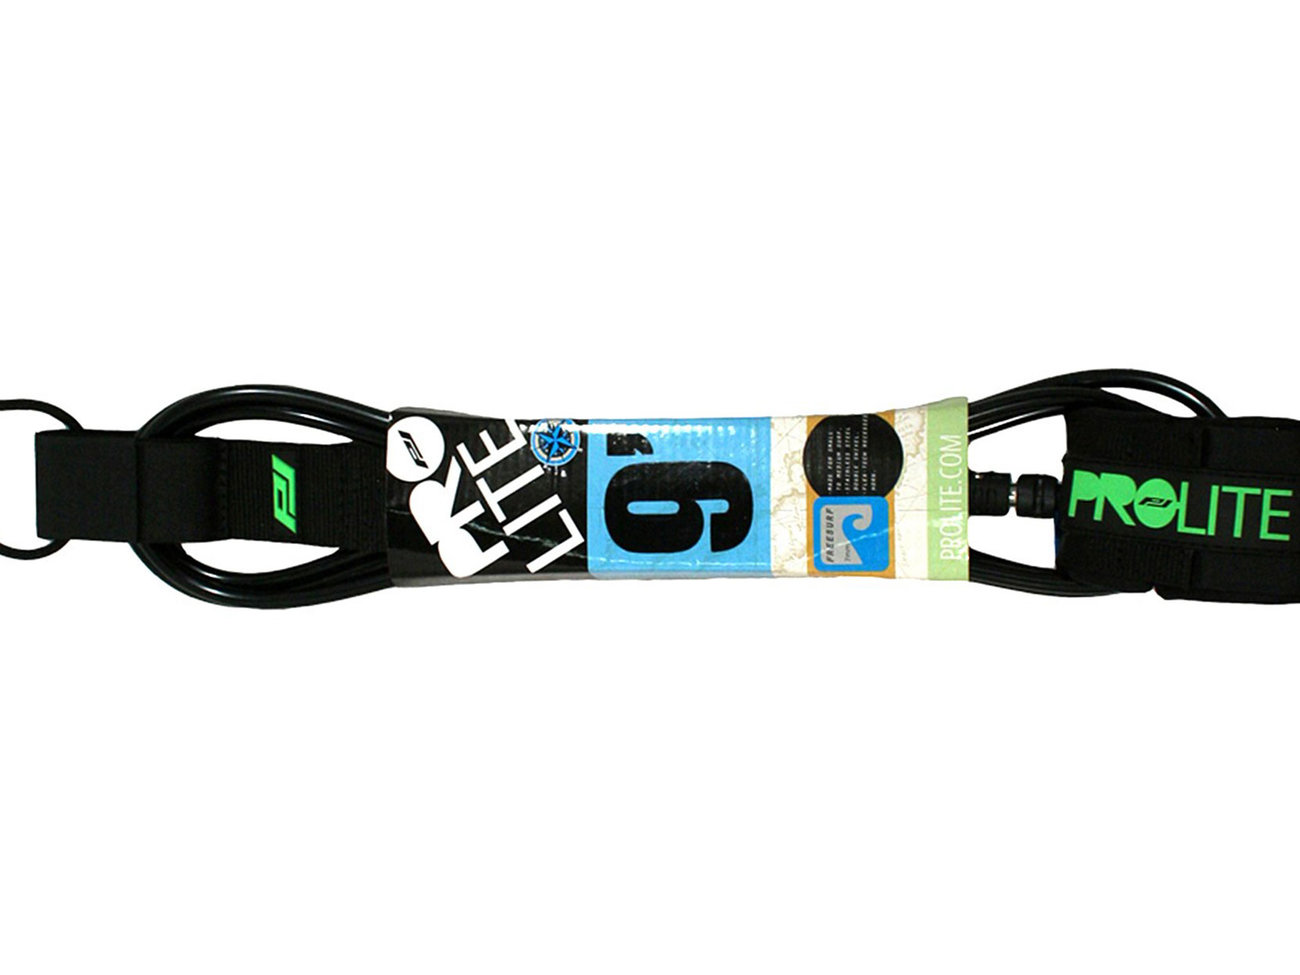 pro-lite-surf-leash-SURFGEAR0816.jpg